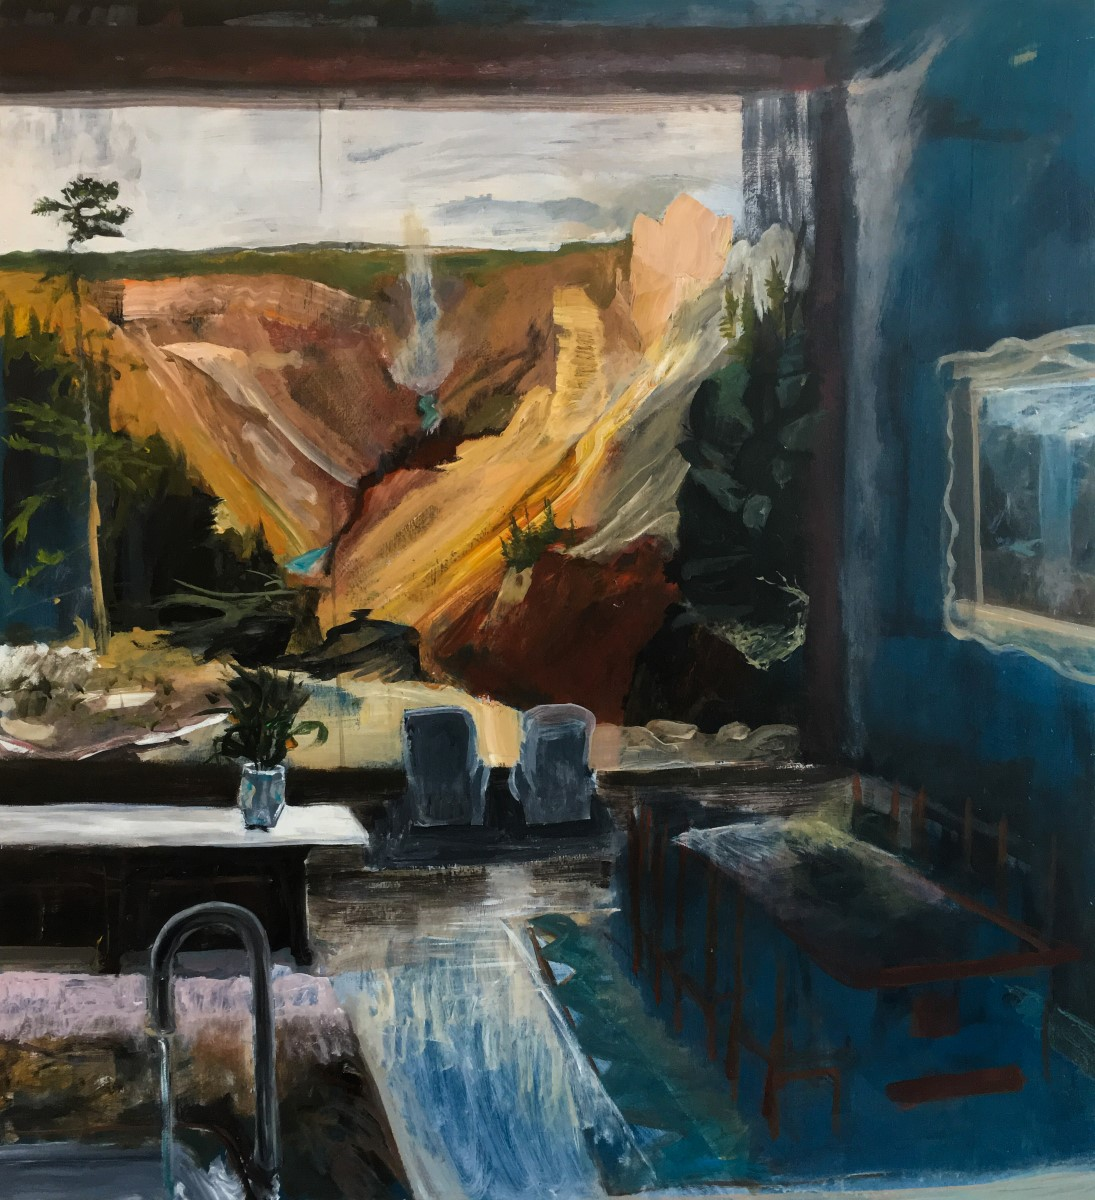 John DeFeo Yellowstone Thomas Moran Painting Point Canyon Waterfall International Realty Southebys Moma Basel Frieze Artist Paint Art Emerging Important Interior Artnet Artnews Collectible Interior Design Decor Dwell Luxe Luxury Home National Parks Wyoming Landscape Yellow Blue Running Faucet